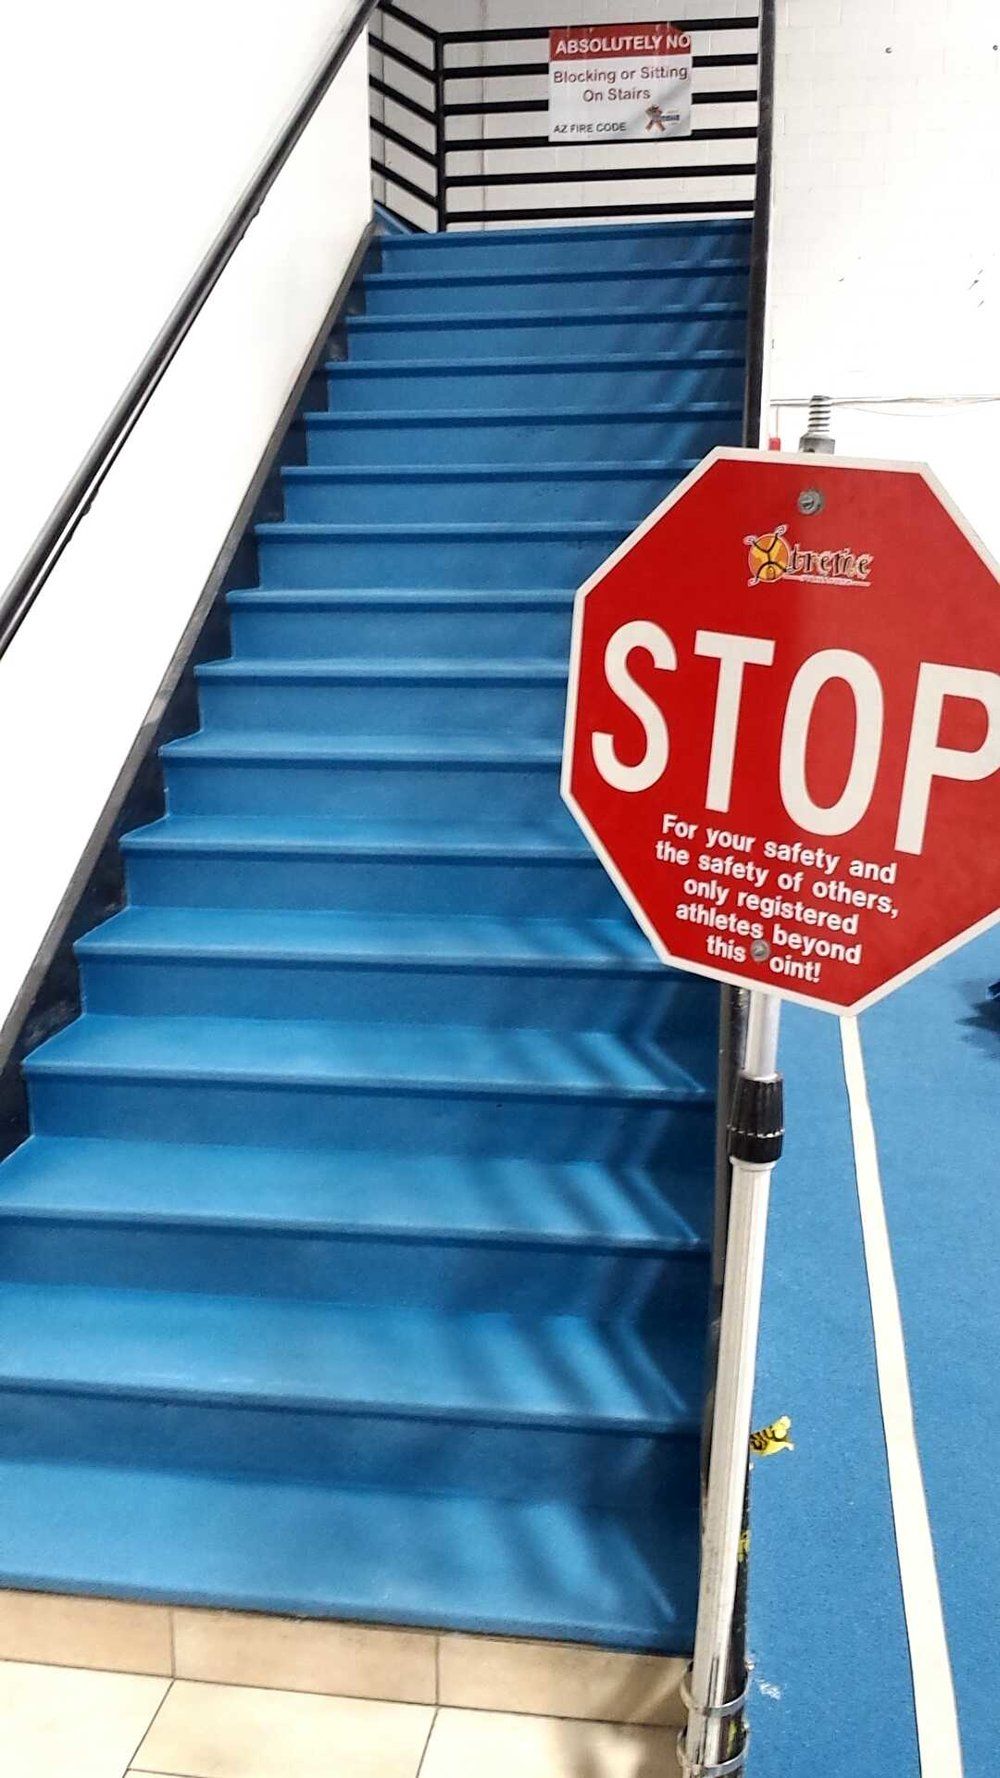 TRAFFIC COATING ON STAIRS IN SAFETY BLUE COLOR